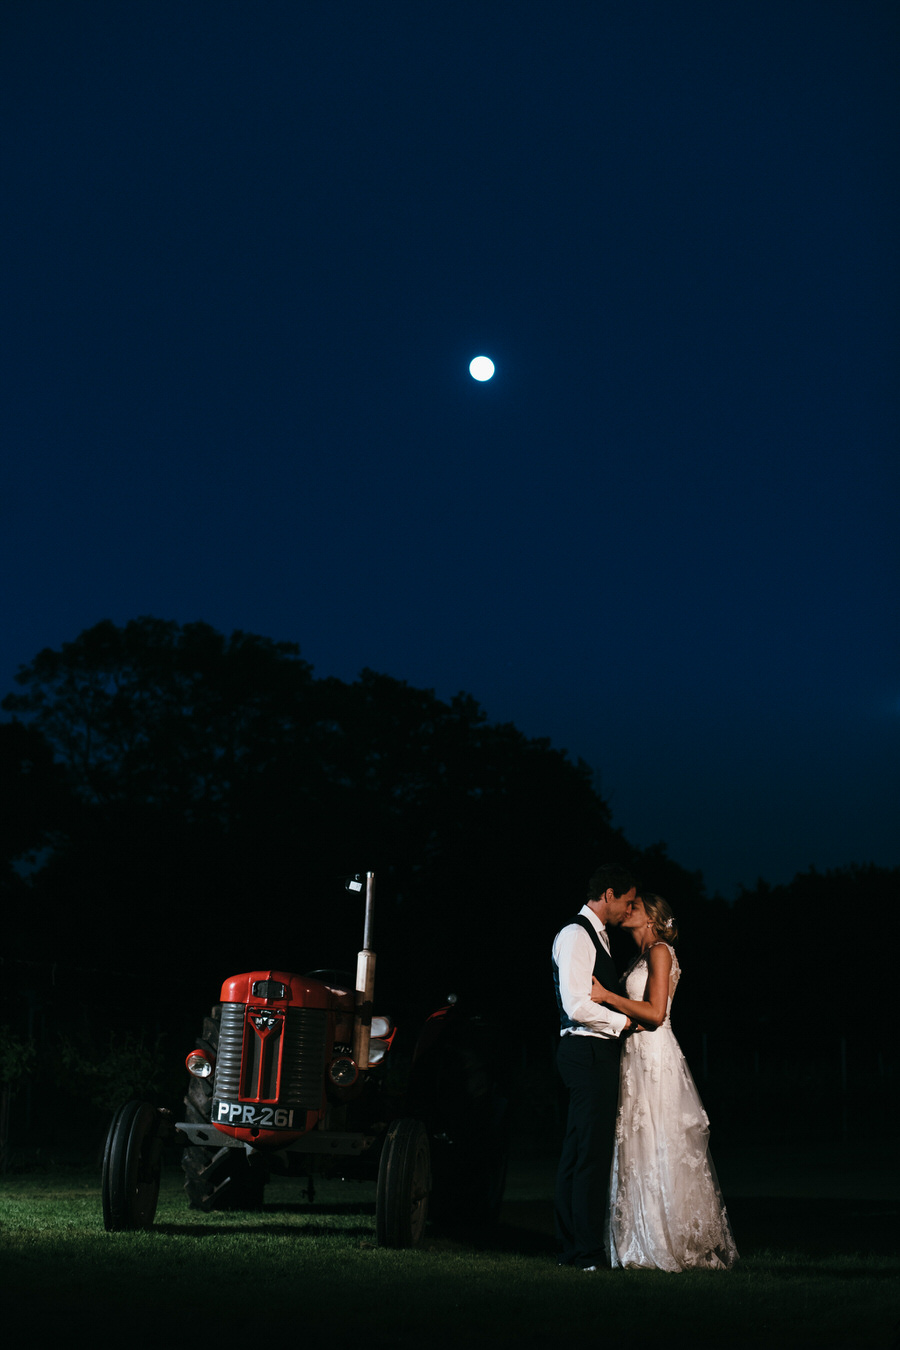 Kirsty & Ben's laid back rustic wedding at Froginwell vineyard, with Simon Biffen Photography (42)